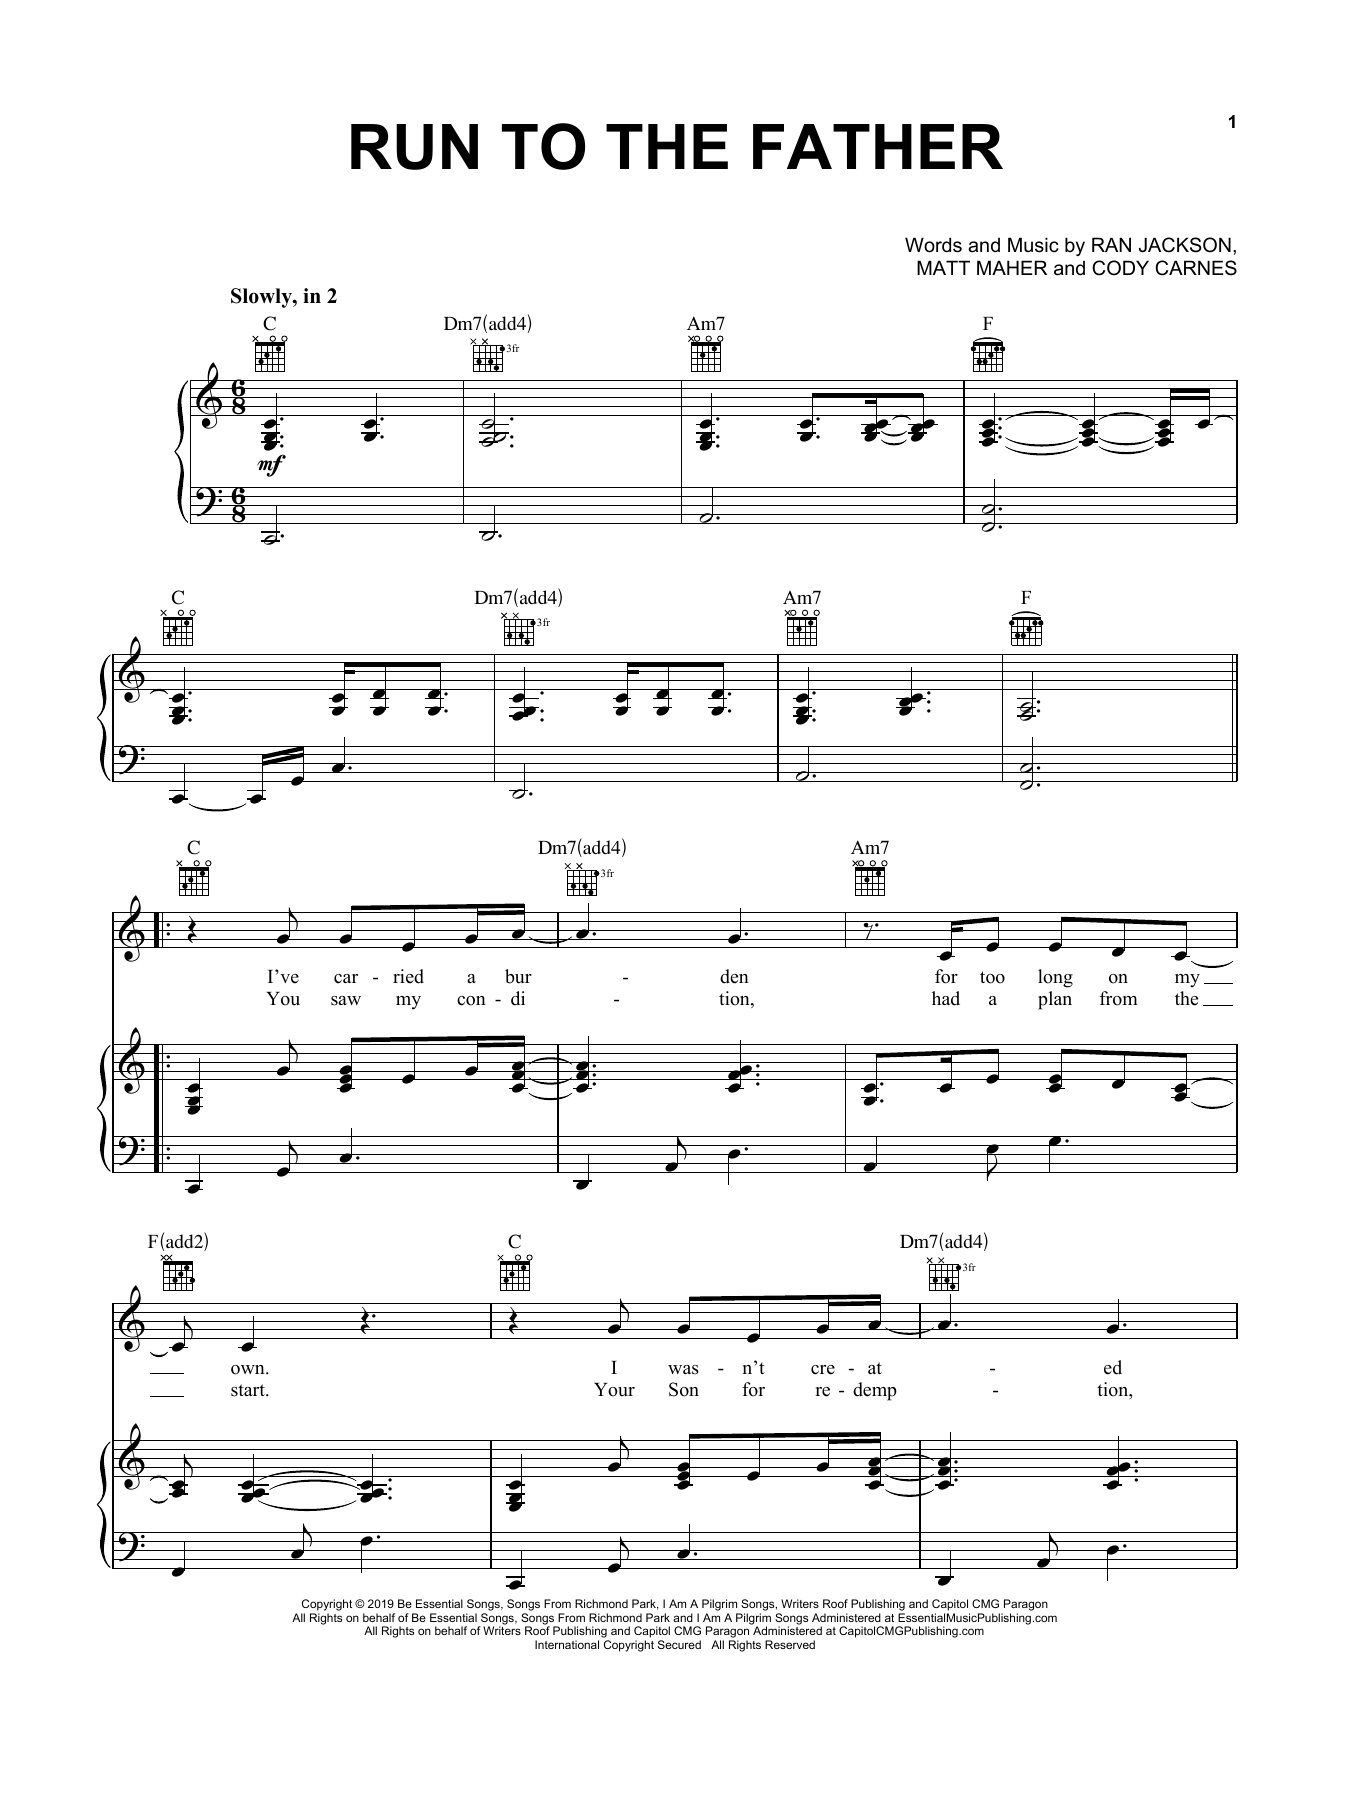 Free Partition Music Sheet Other Father Song Piano Sheet Music